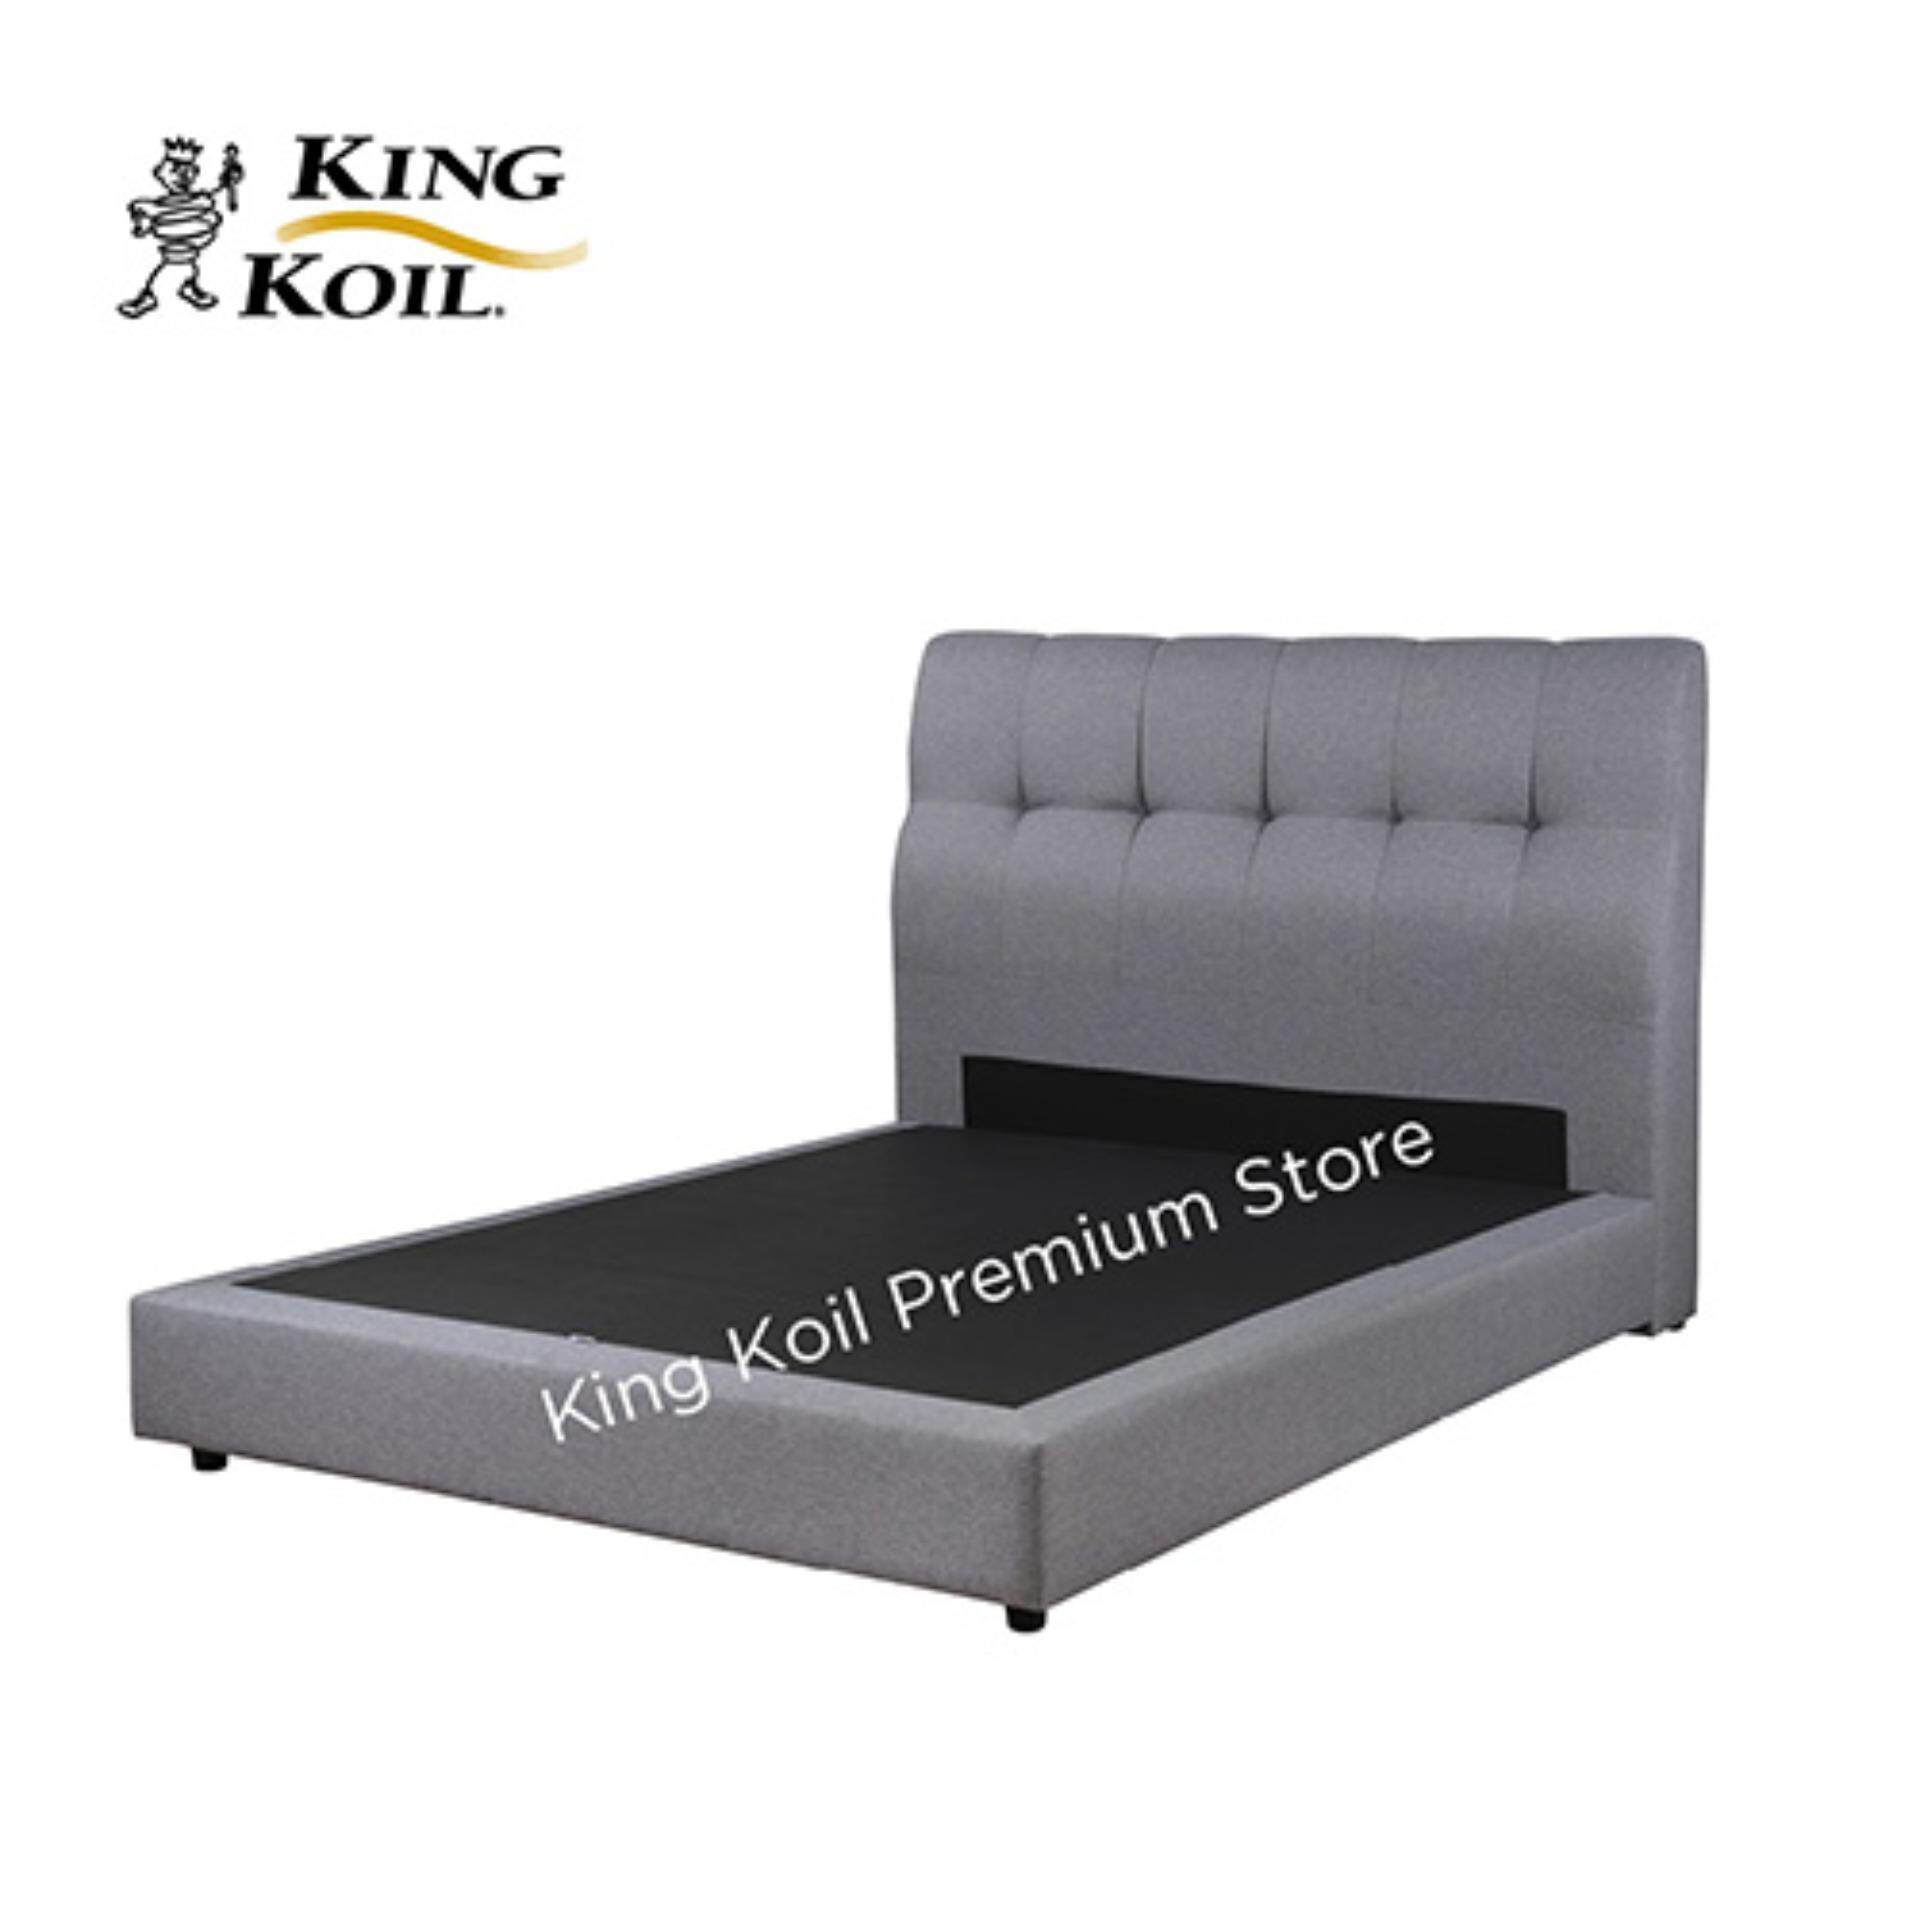 First Knight By King Koil Cambridge Comfort Bedframe Size